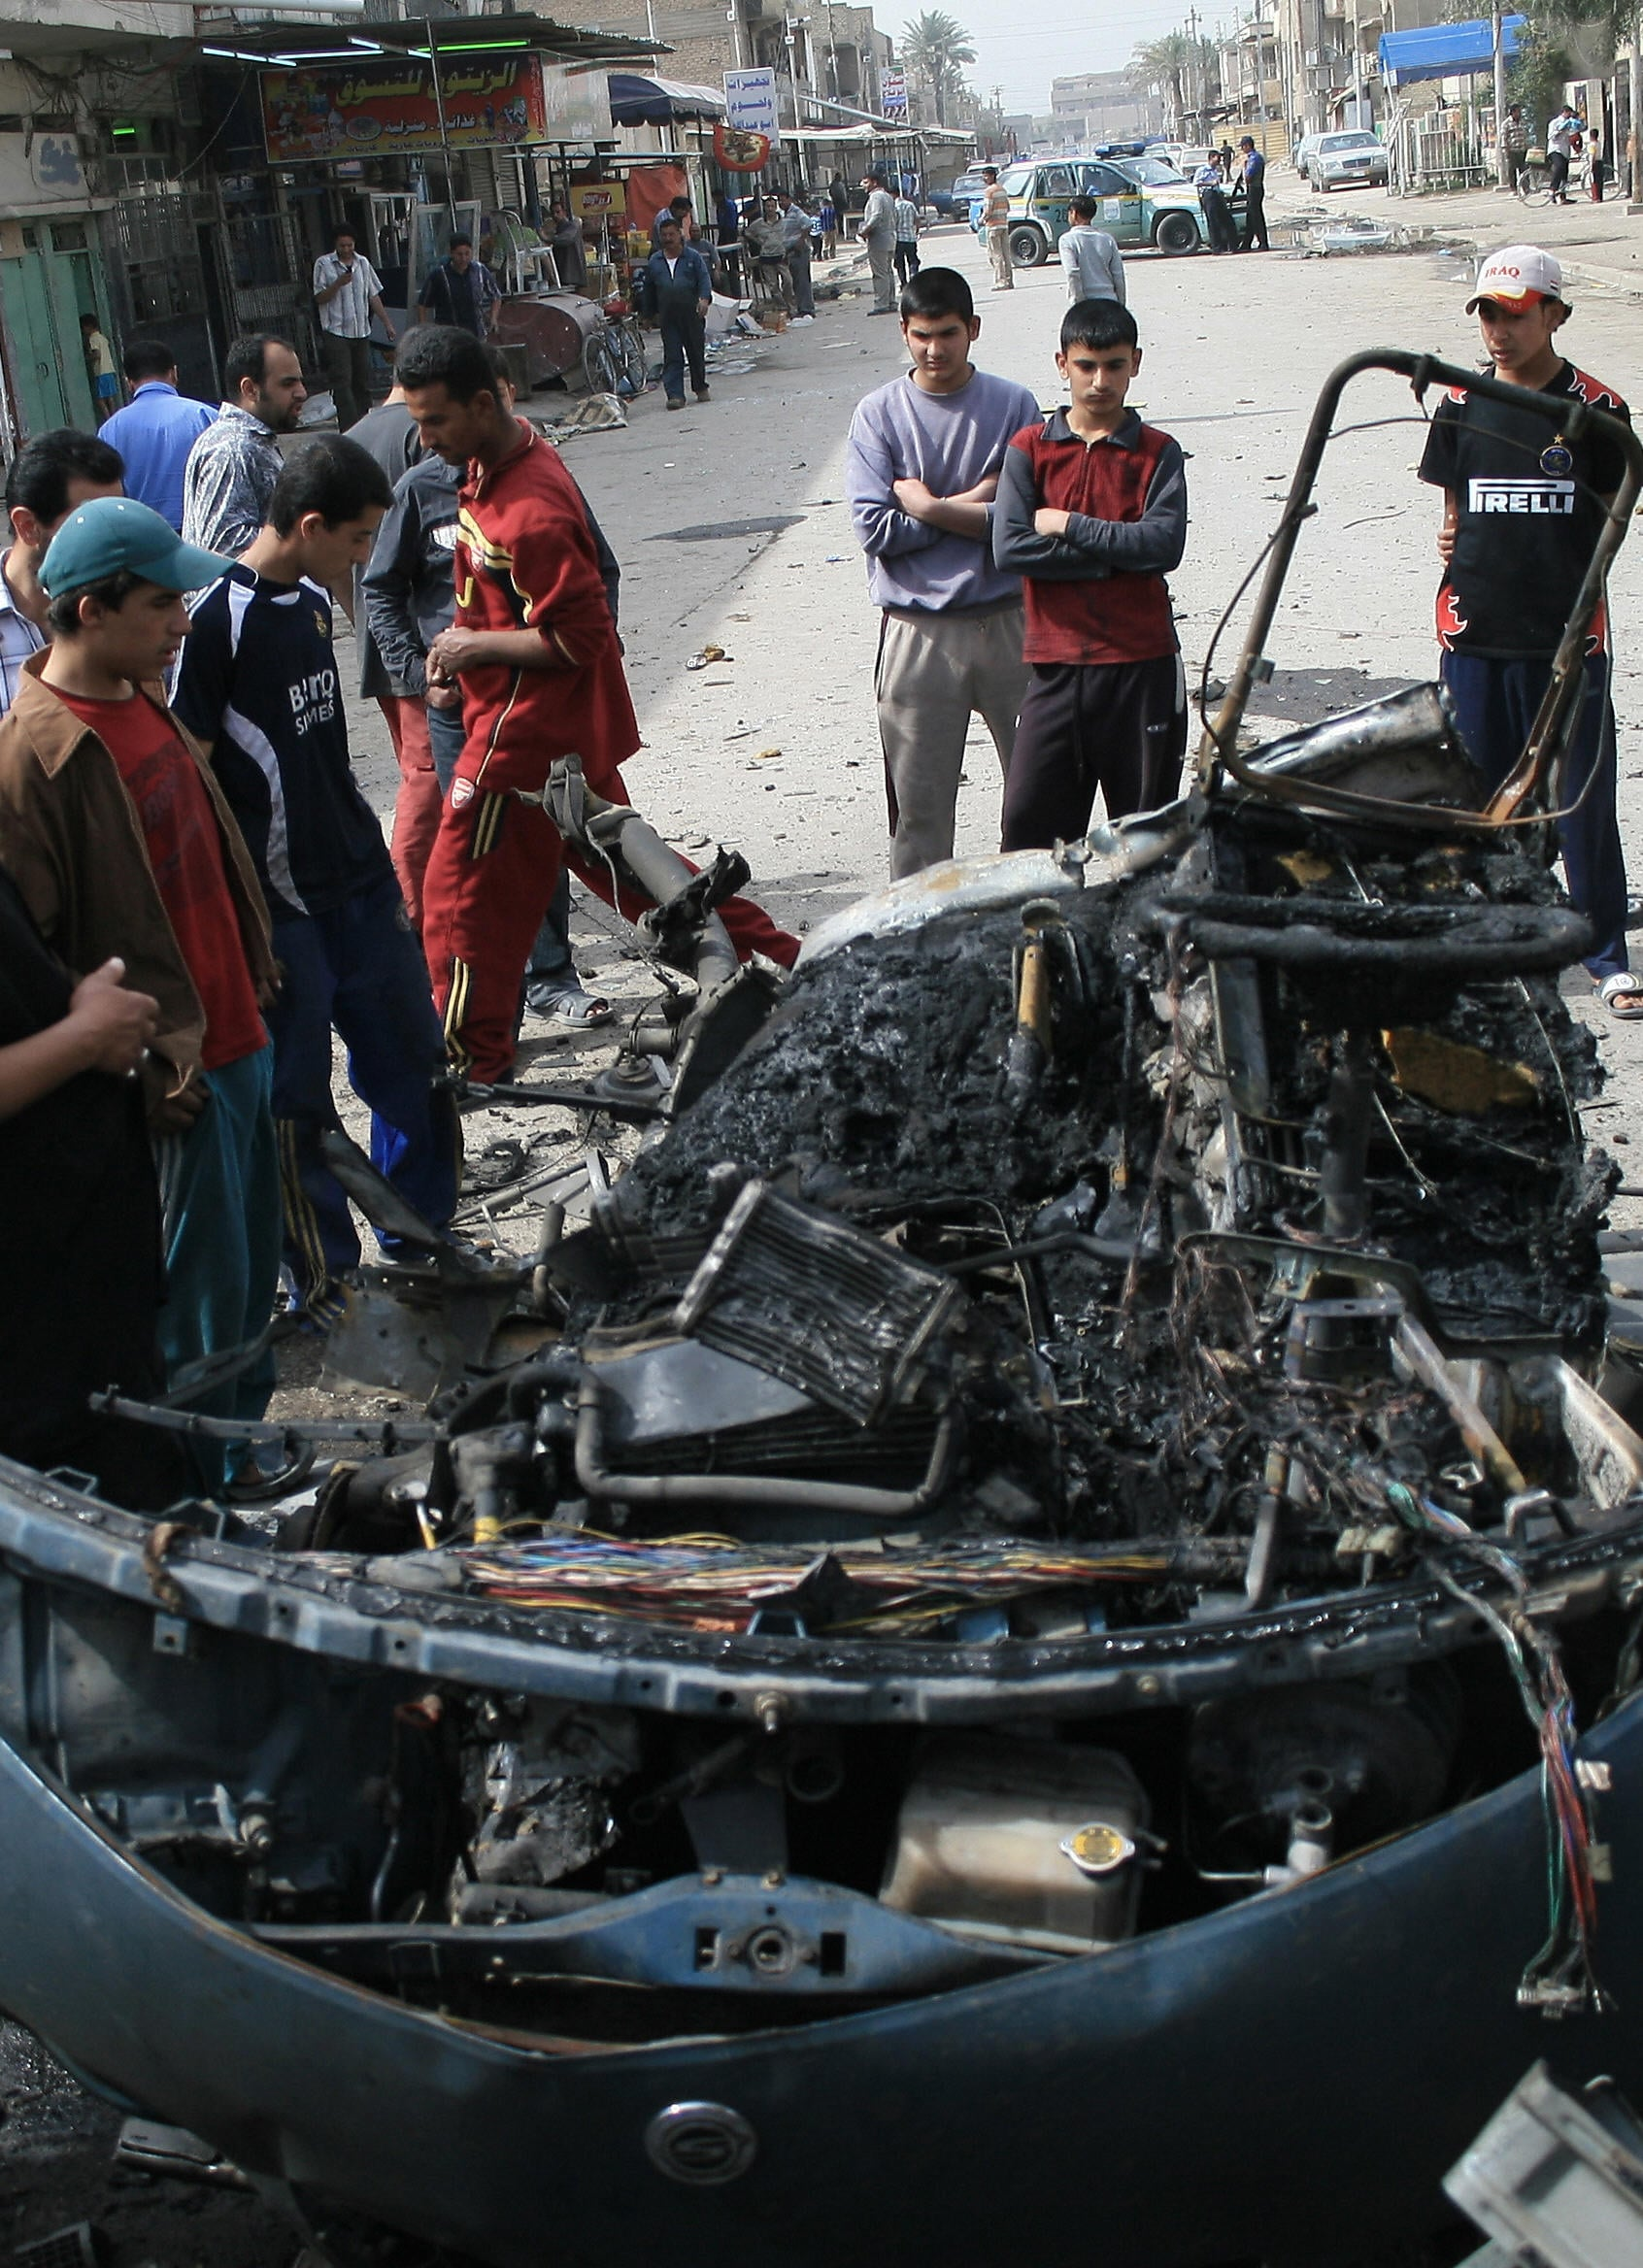 Iraqi youths gather around the wreckage of a car at the scene of an explosion in Baghdad's Al-Shaab neighborhood on Mar 10, 2007